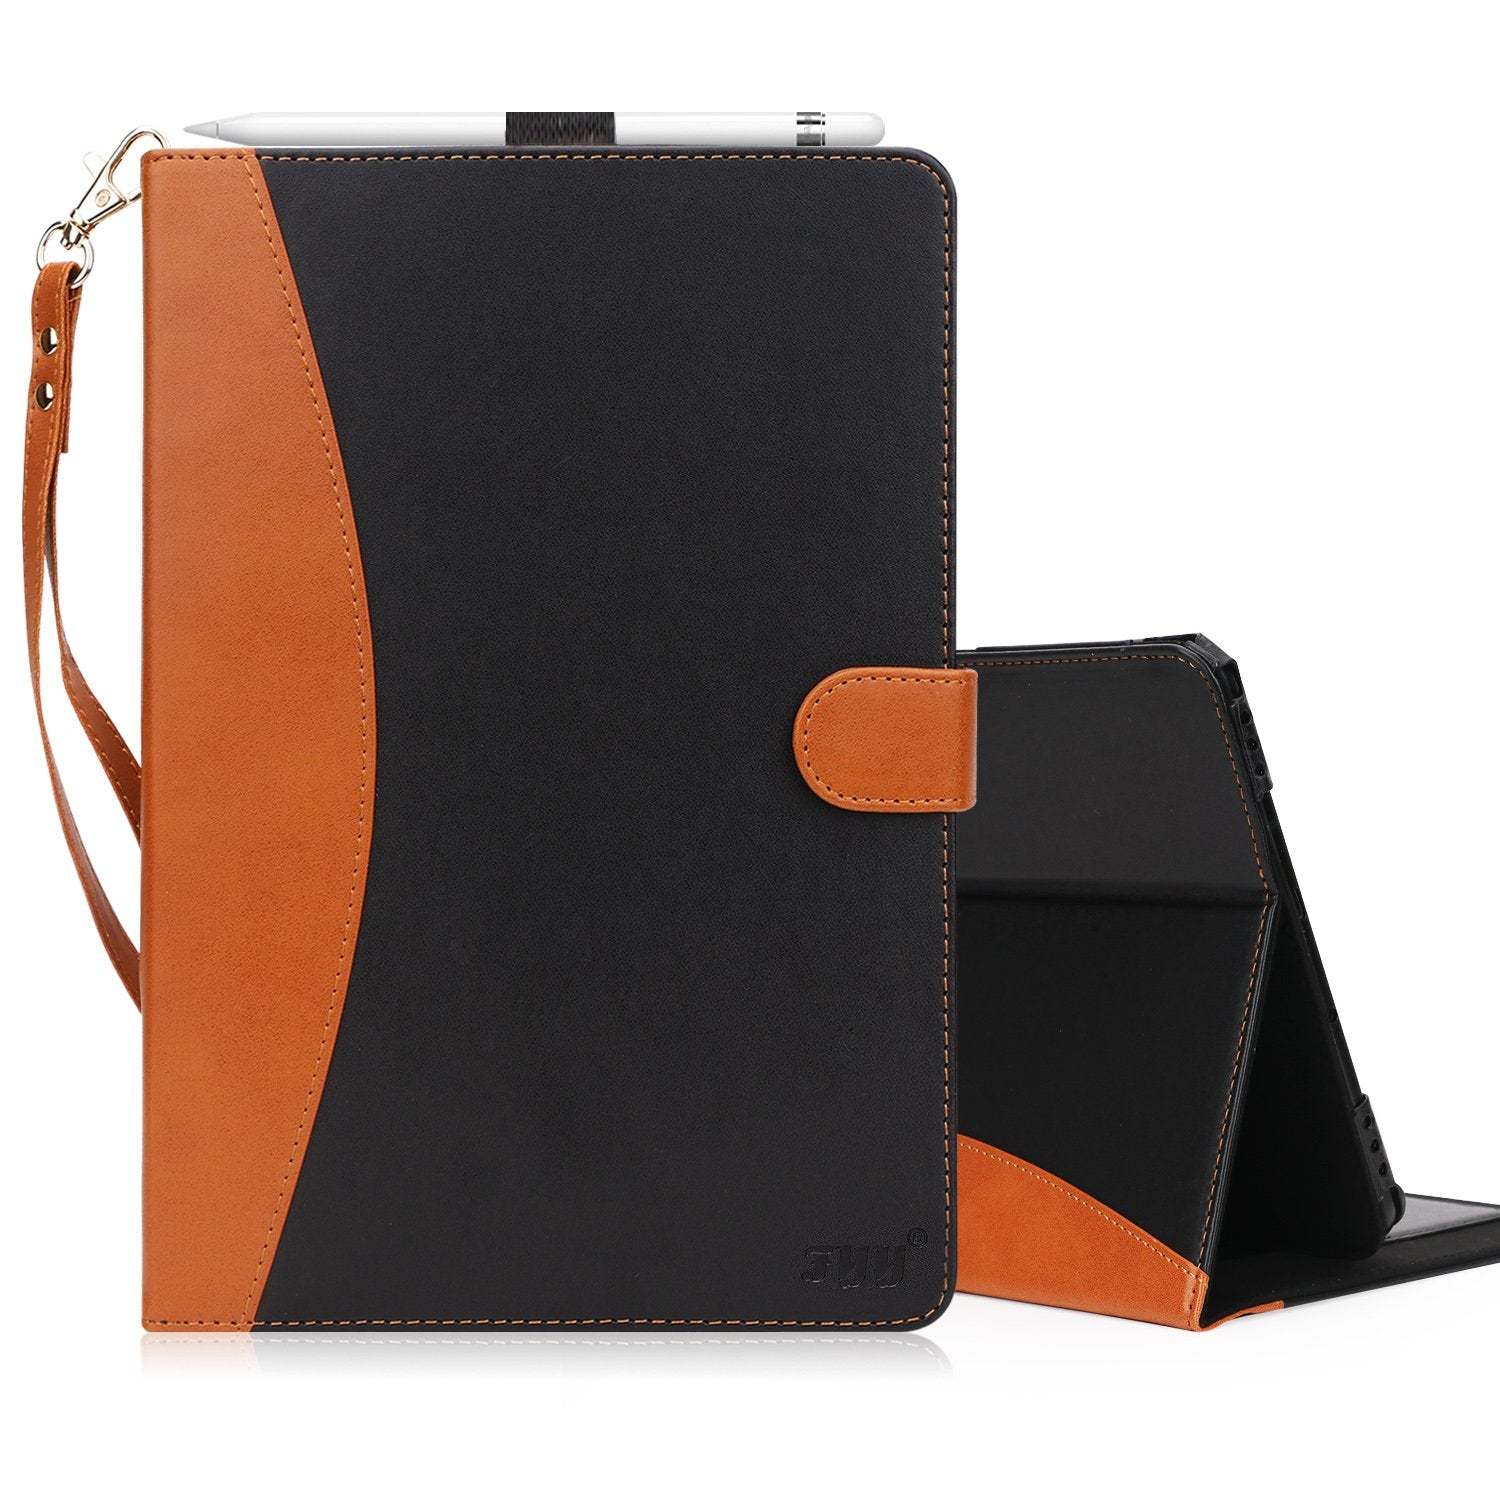 PU Leather Case for Galaxy Tab S3 9.7""